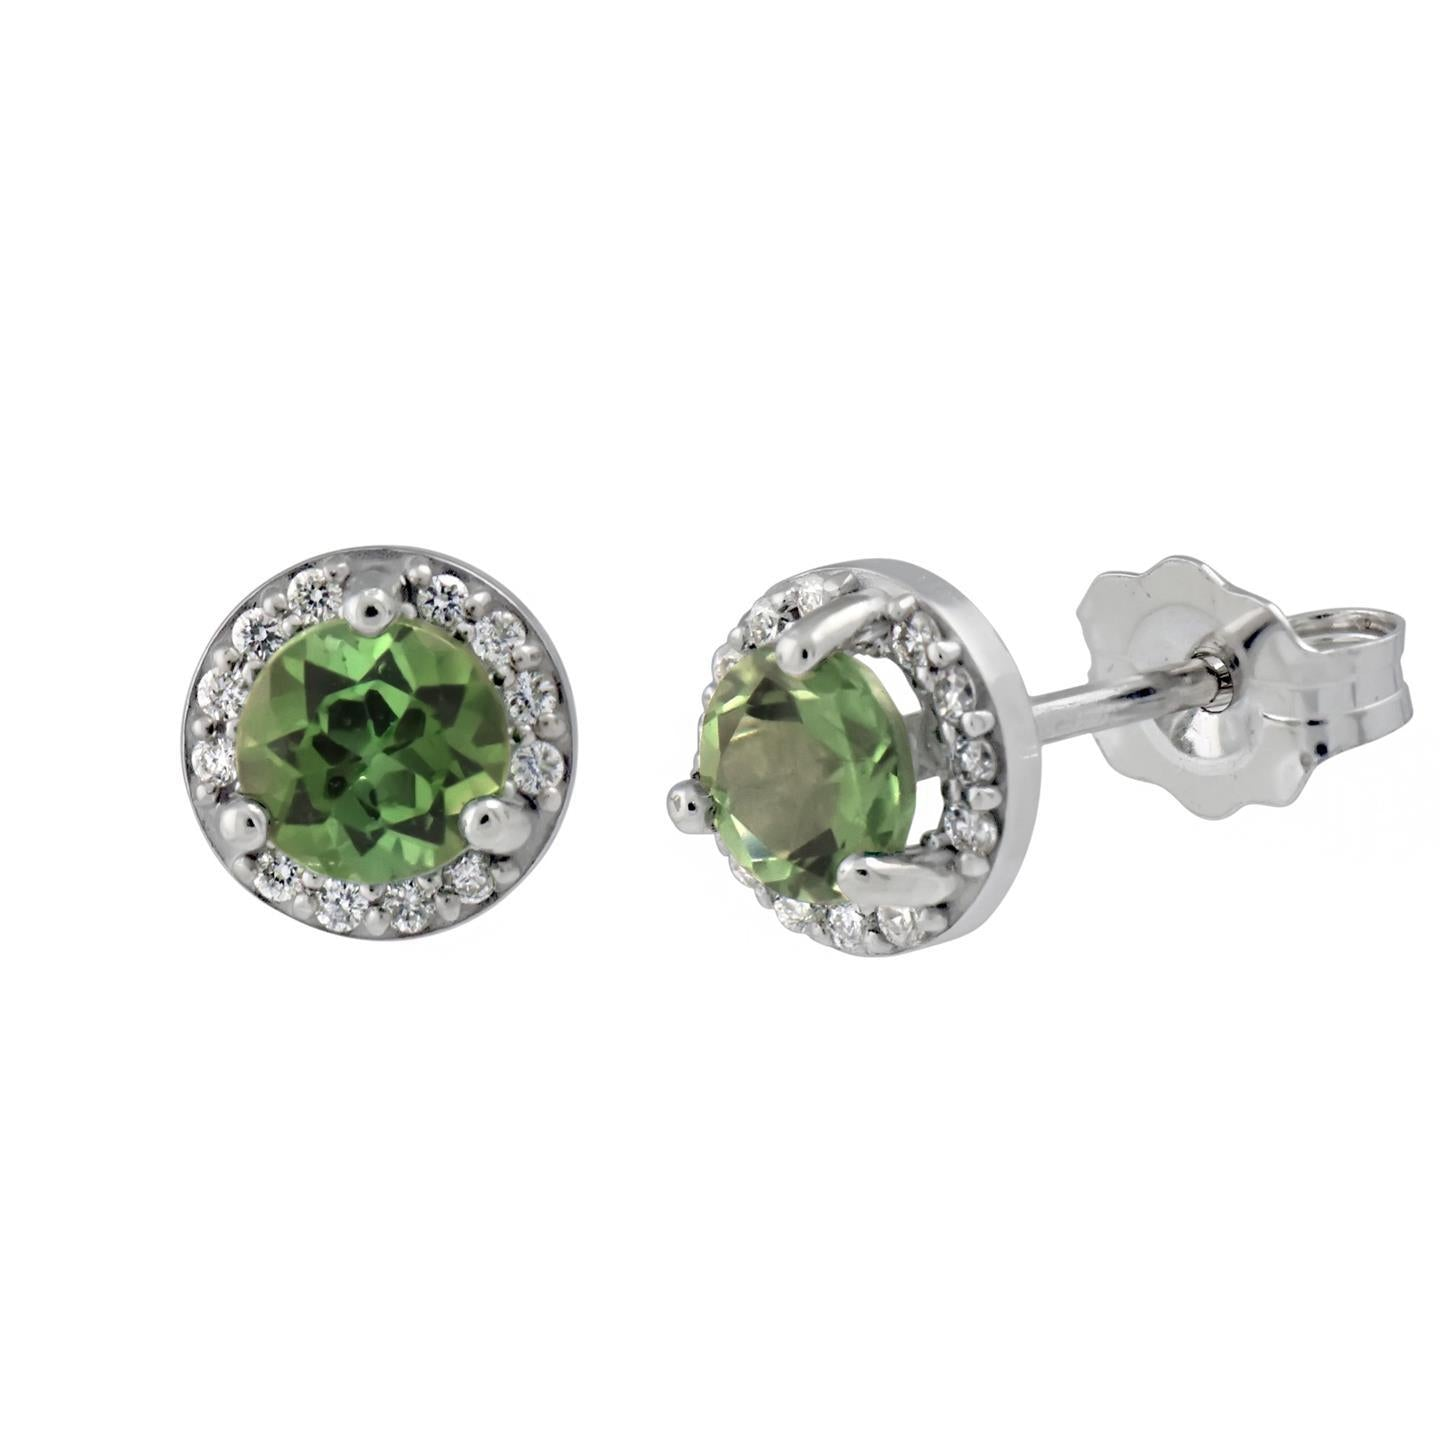 5.5 Ct Round Green Tourmaline Halo Diamond Stud Earring 14K White Gold Gemstone Earring